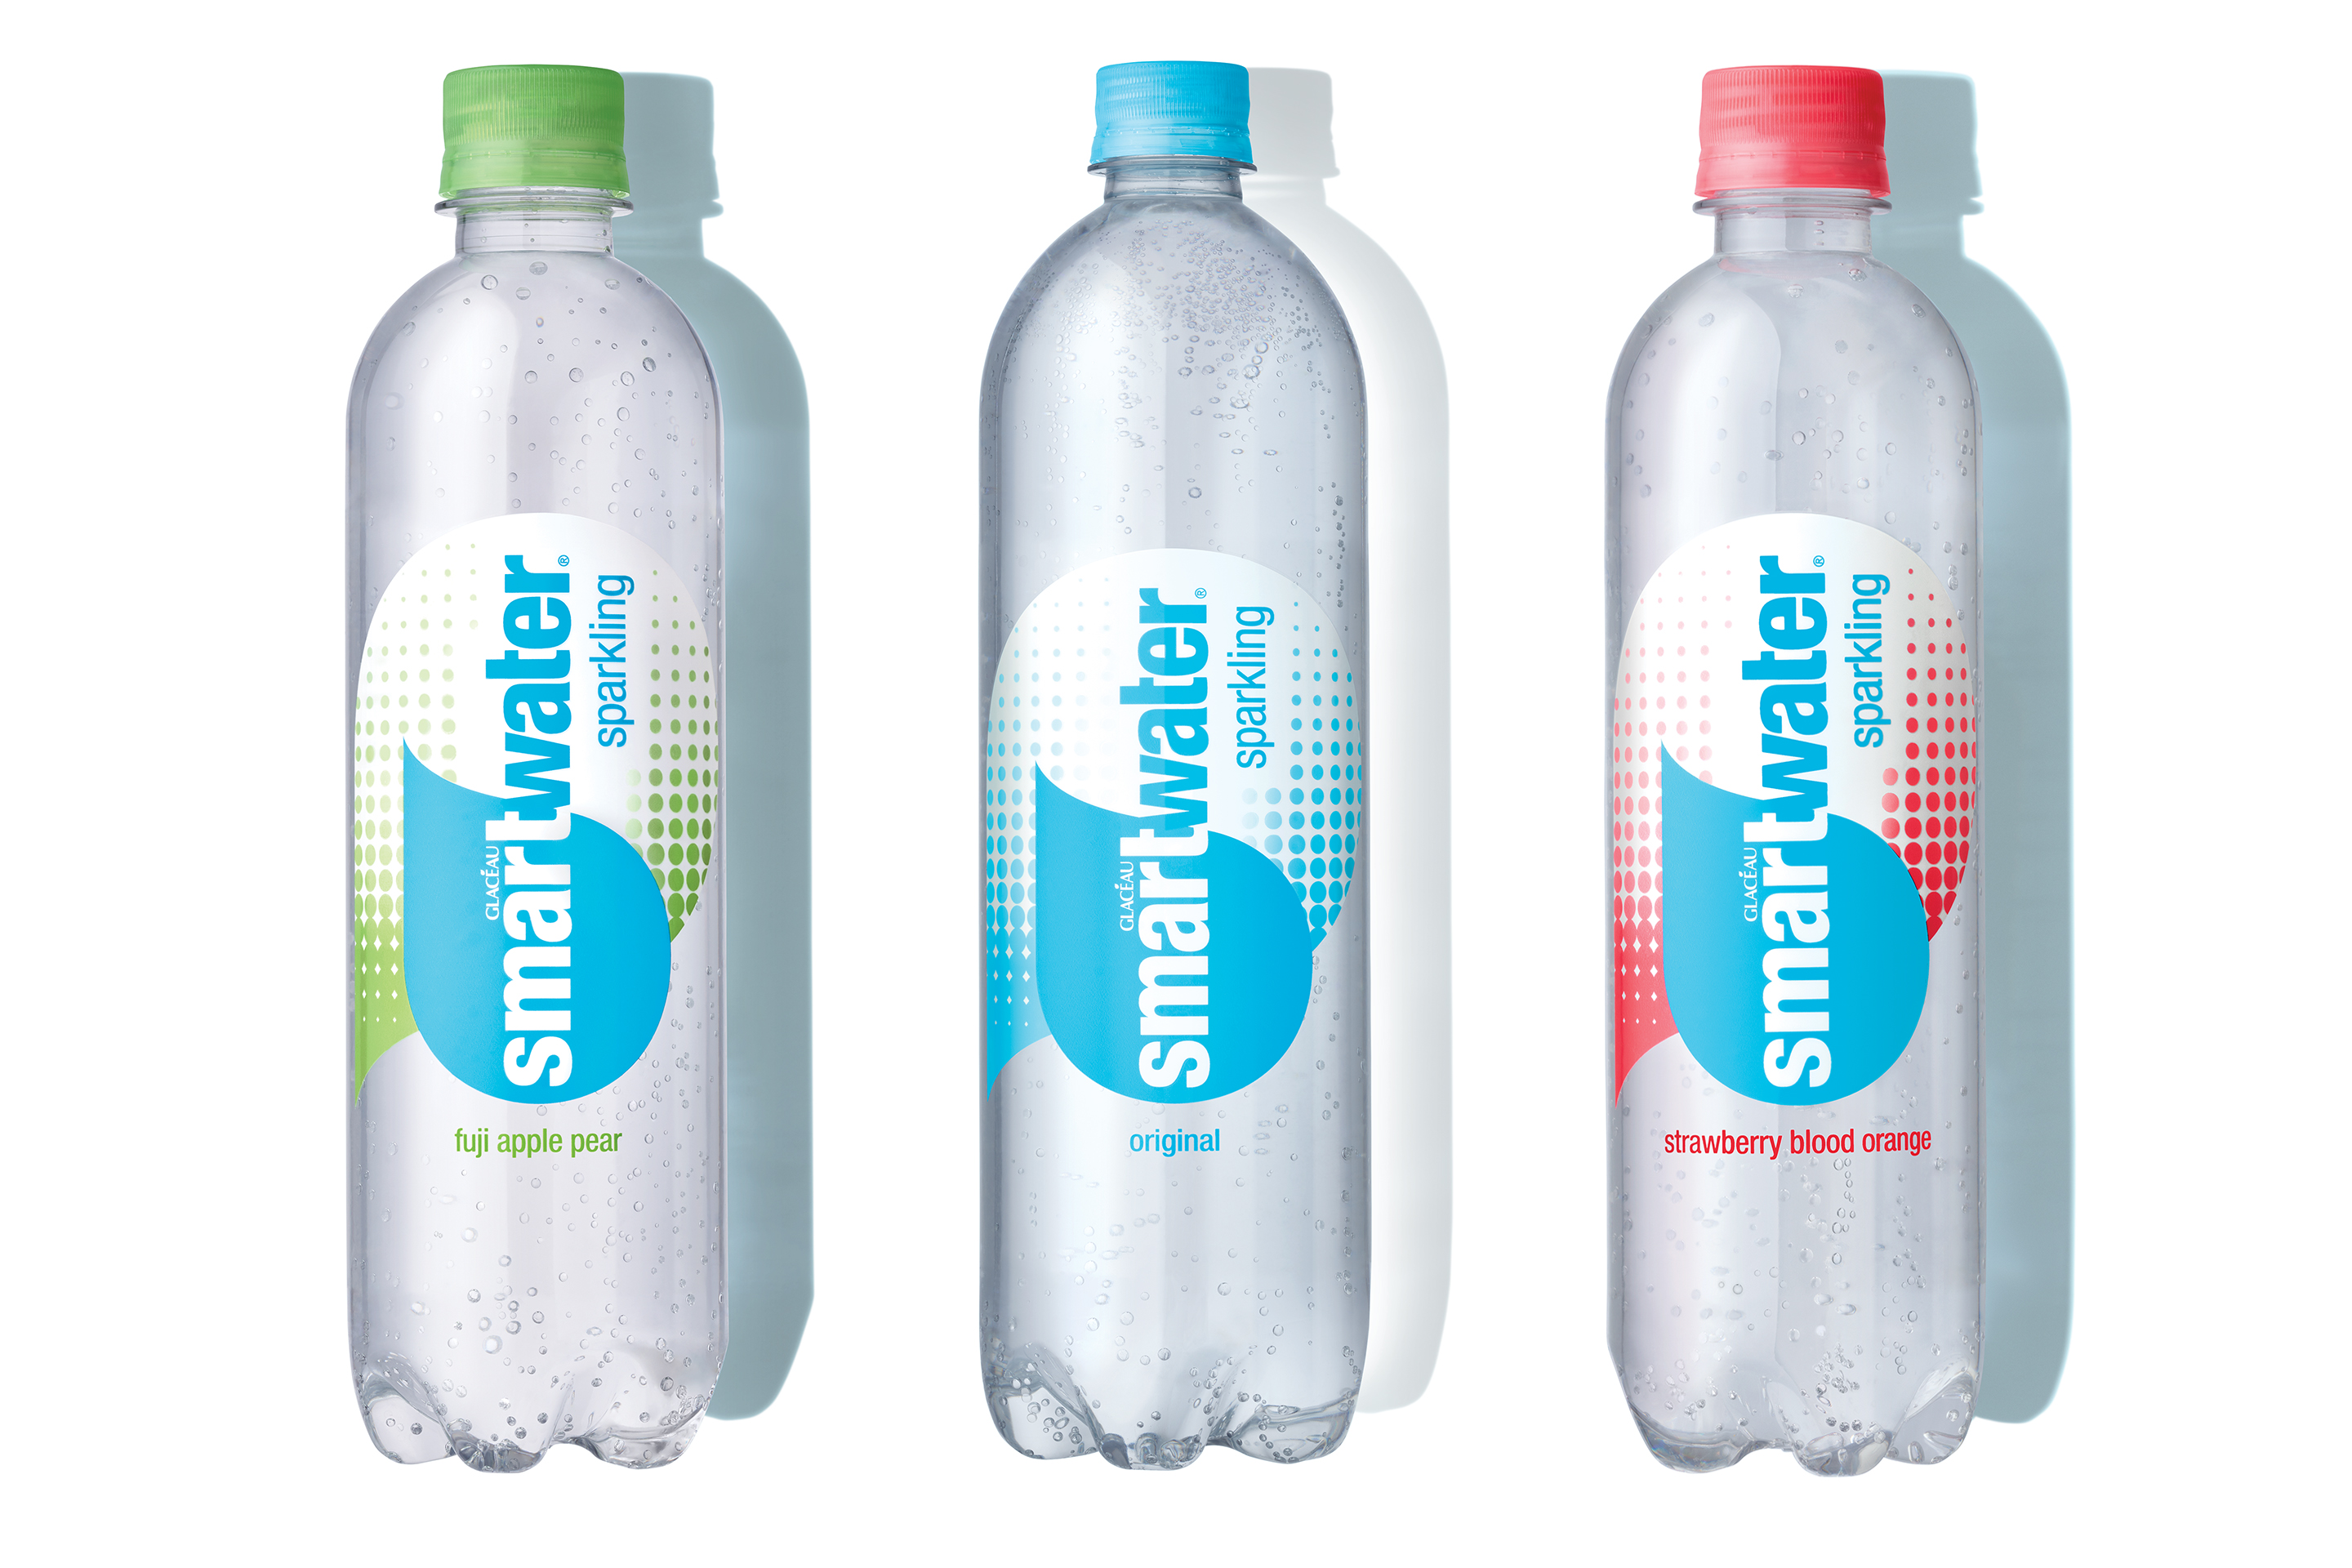 Coca-Cola Releasing Three Sparkling Smartwater Flavors | Fortune